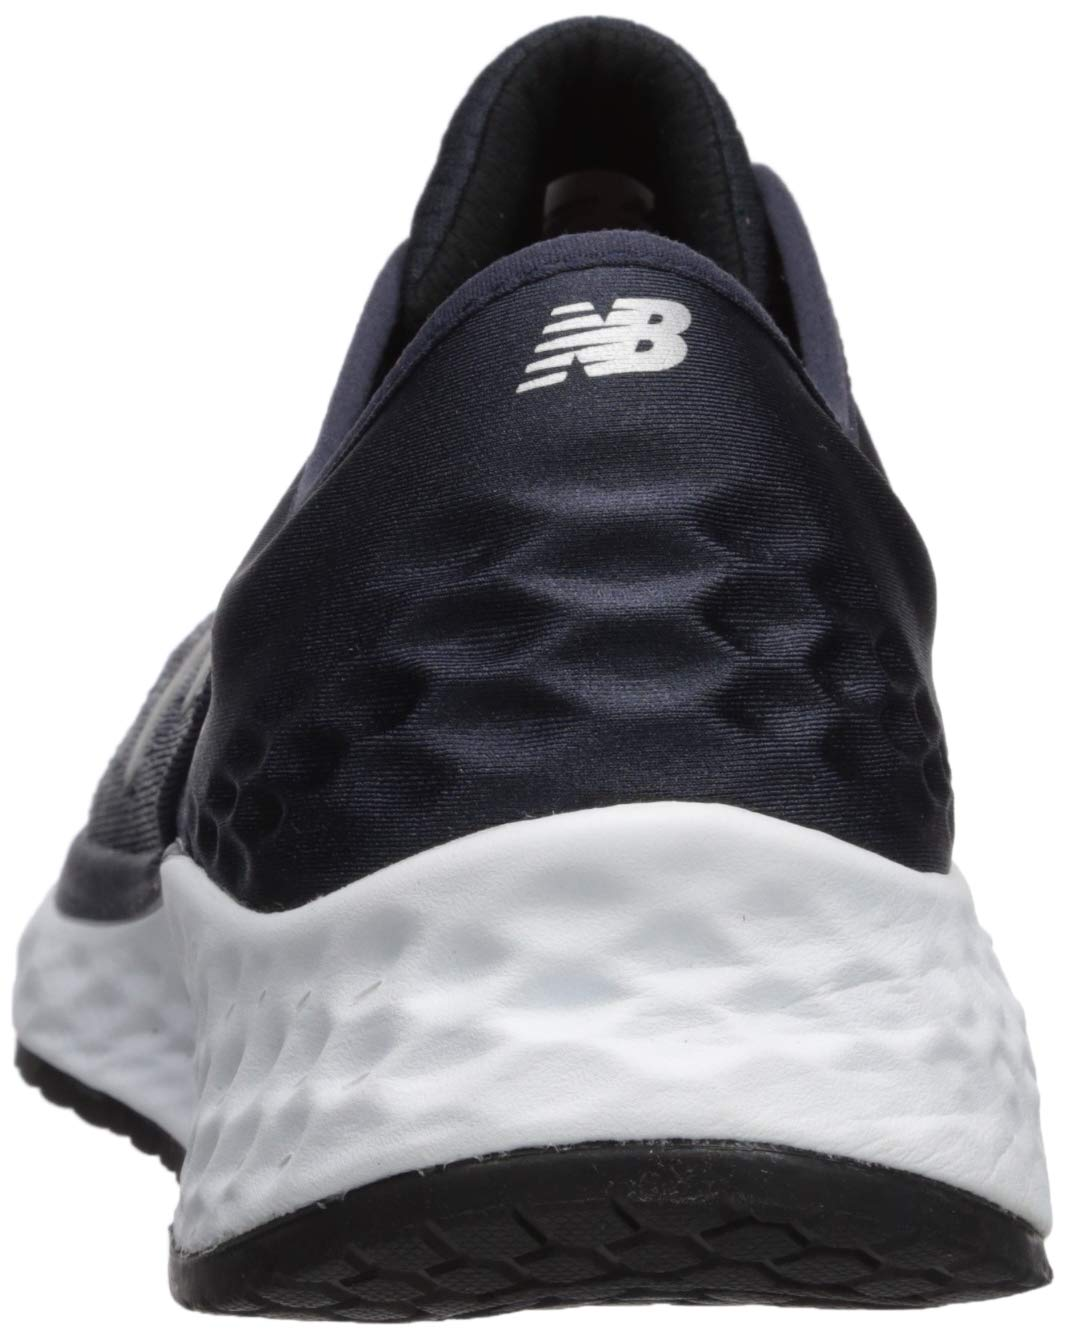 New Balance Men's 1080v9 Fresh Foam Running Shoe, Gunmetal/Outerspace/Energy red, 7 D US by New Balance (Image #2)